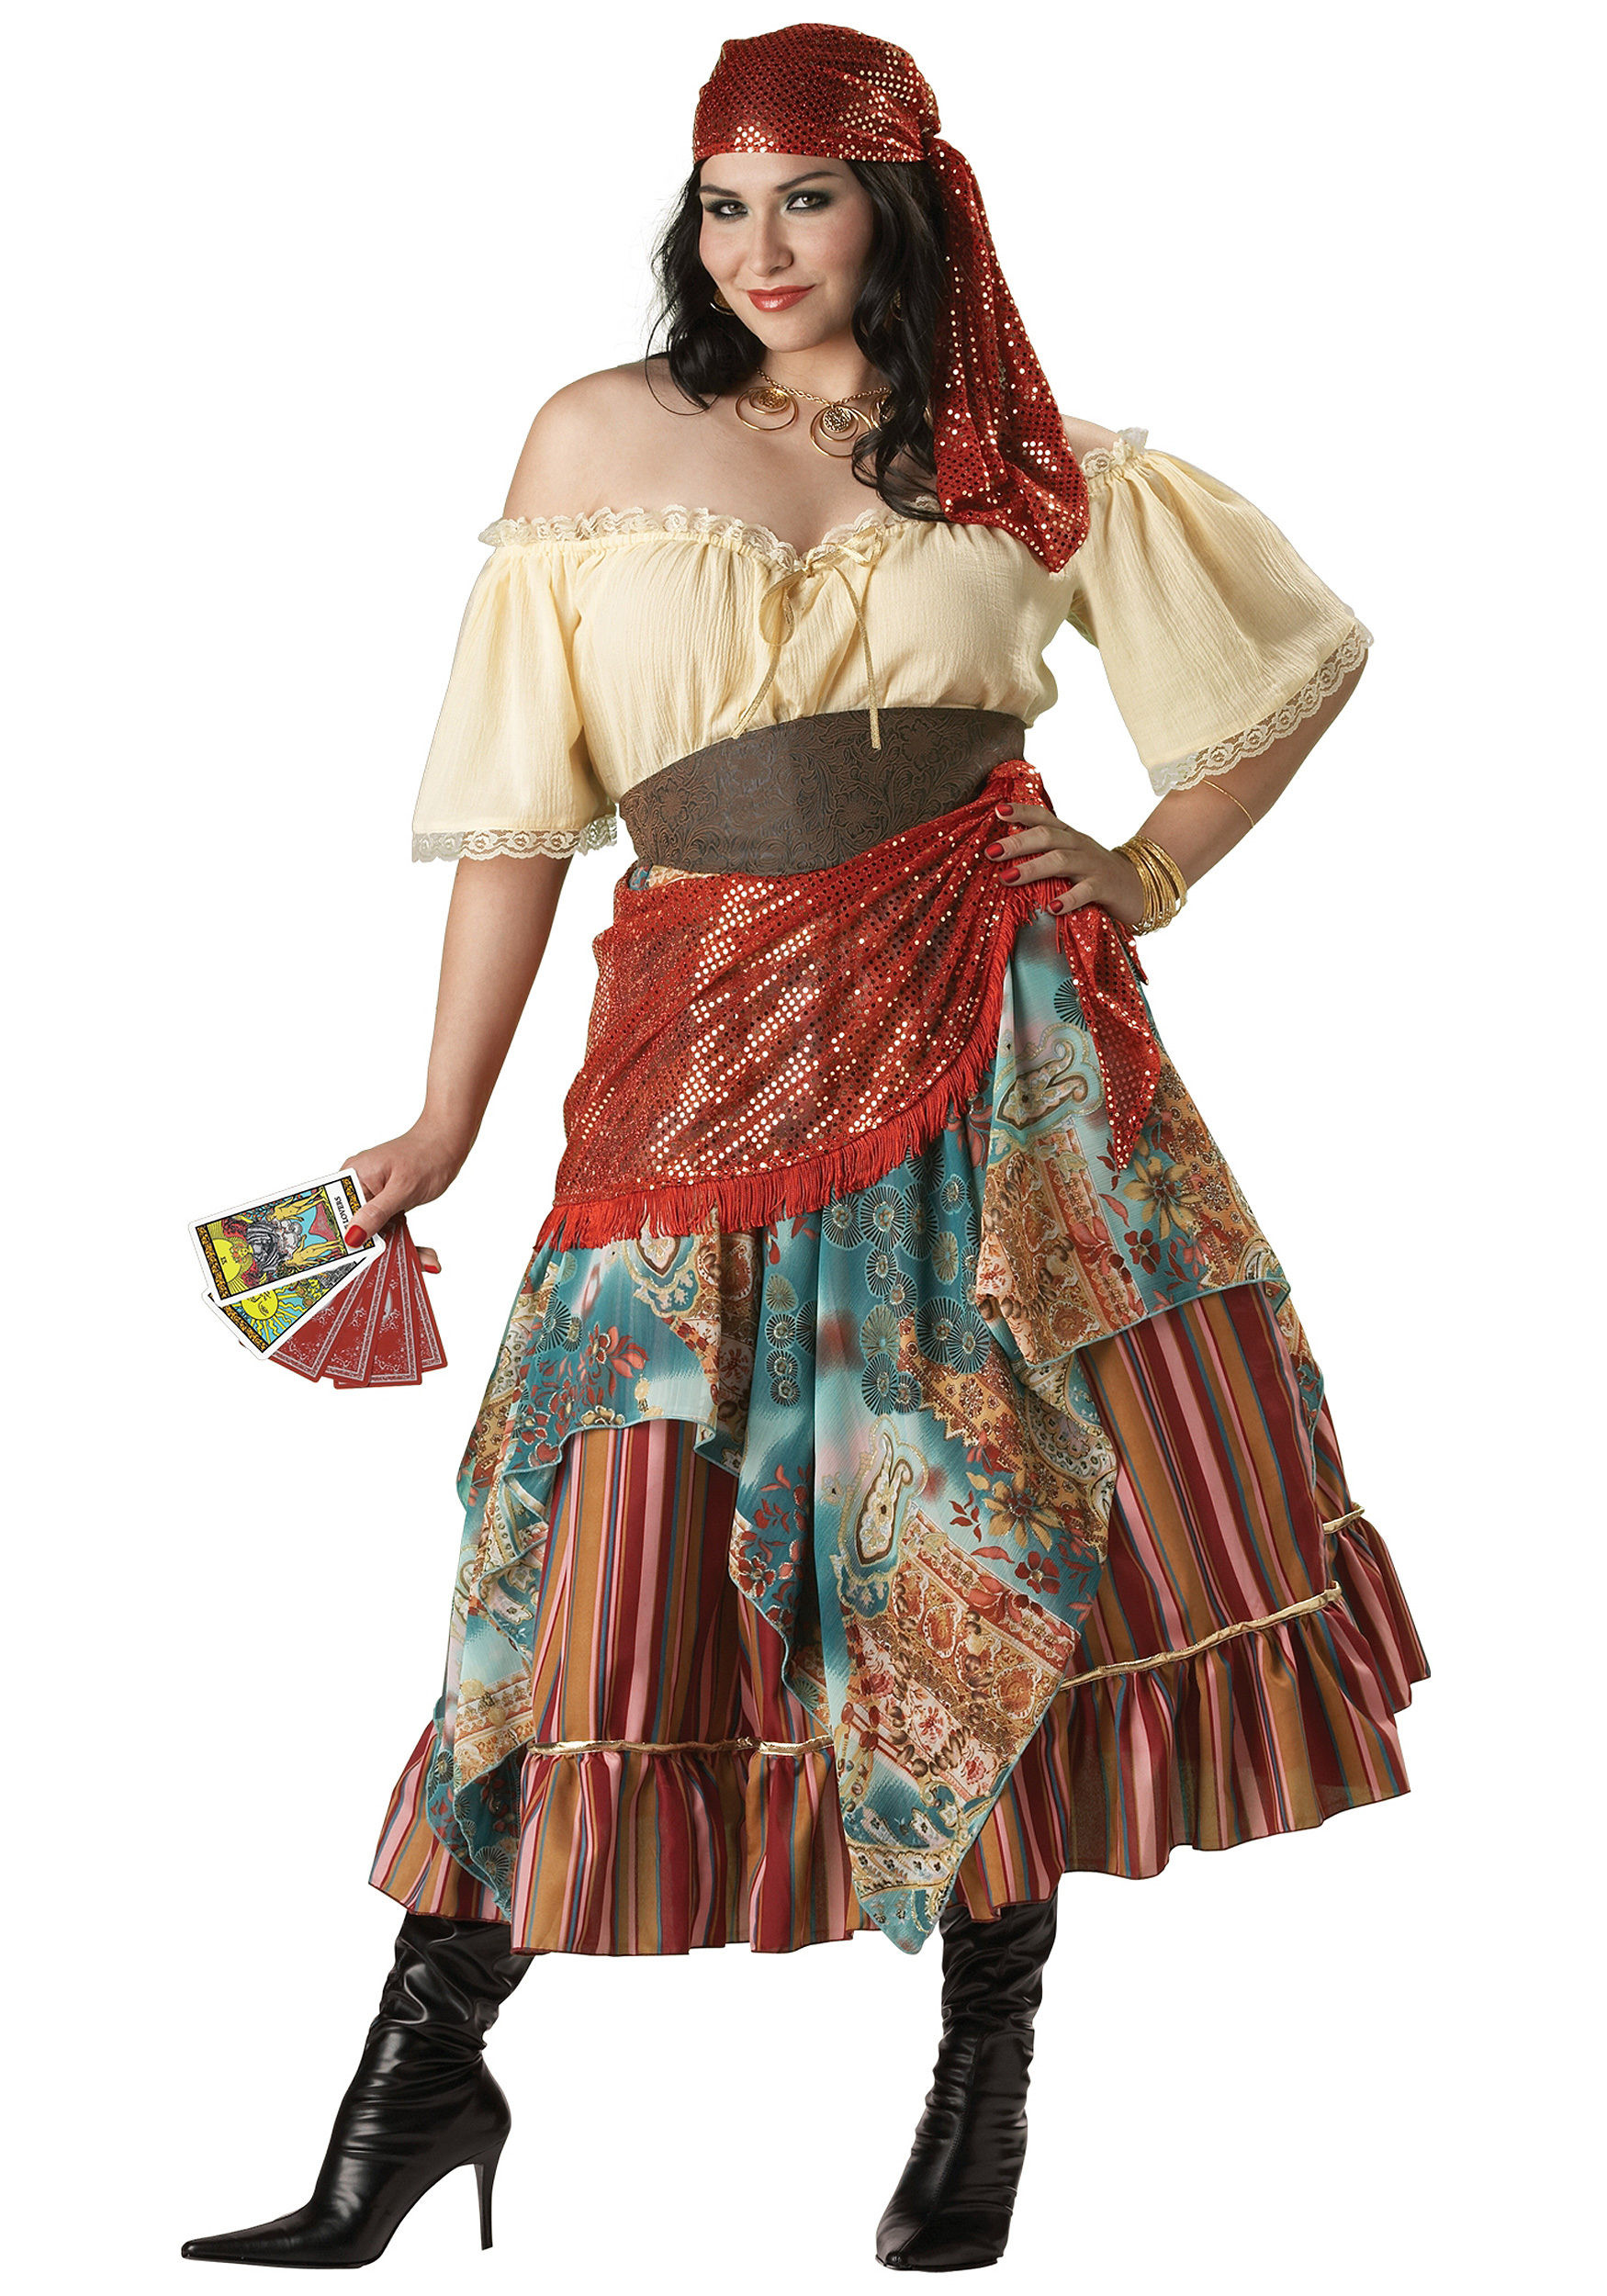 Gypsy Costumes DIY  Fortune Teller Plus Size Gypsy Costume Mr Costumes